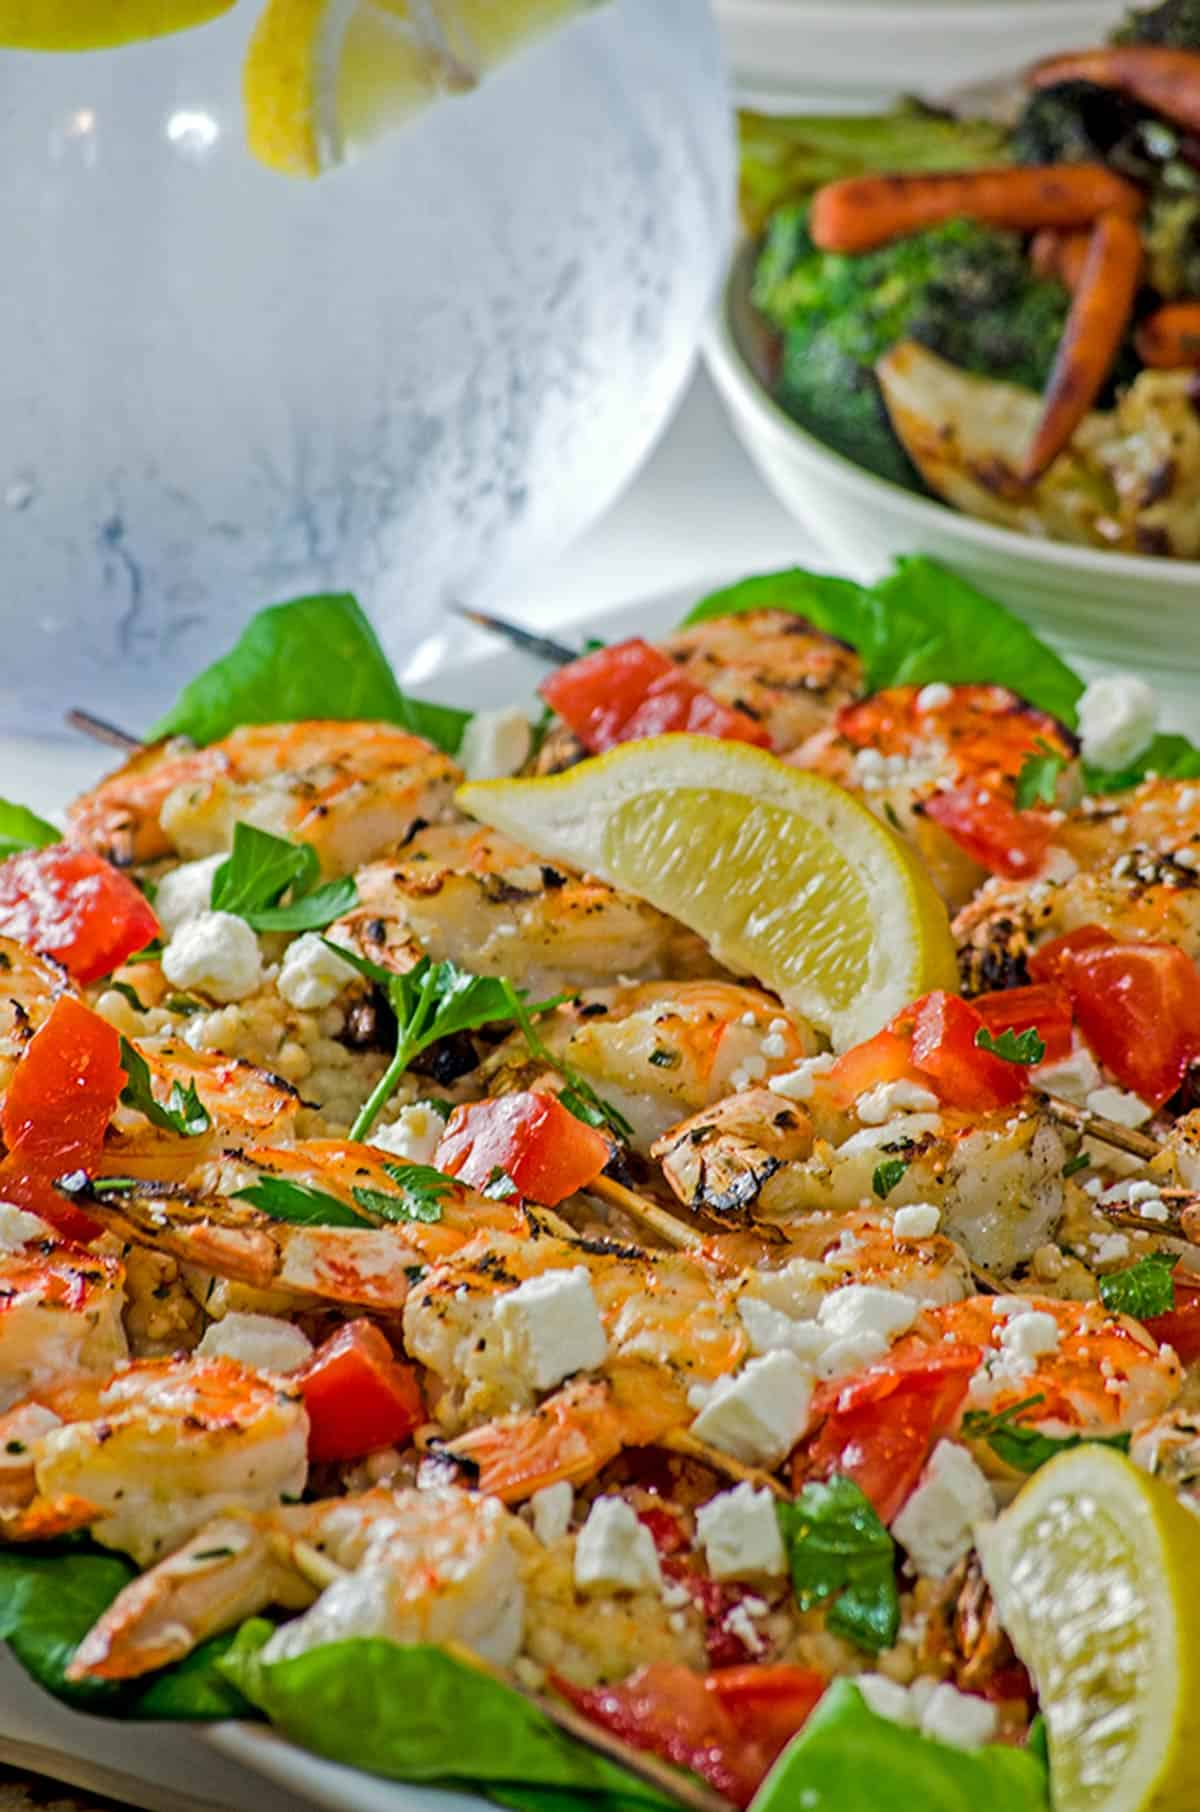 A plate of shrimp with feta cheese.